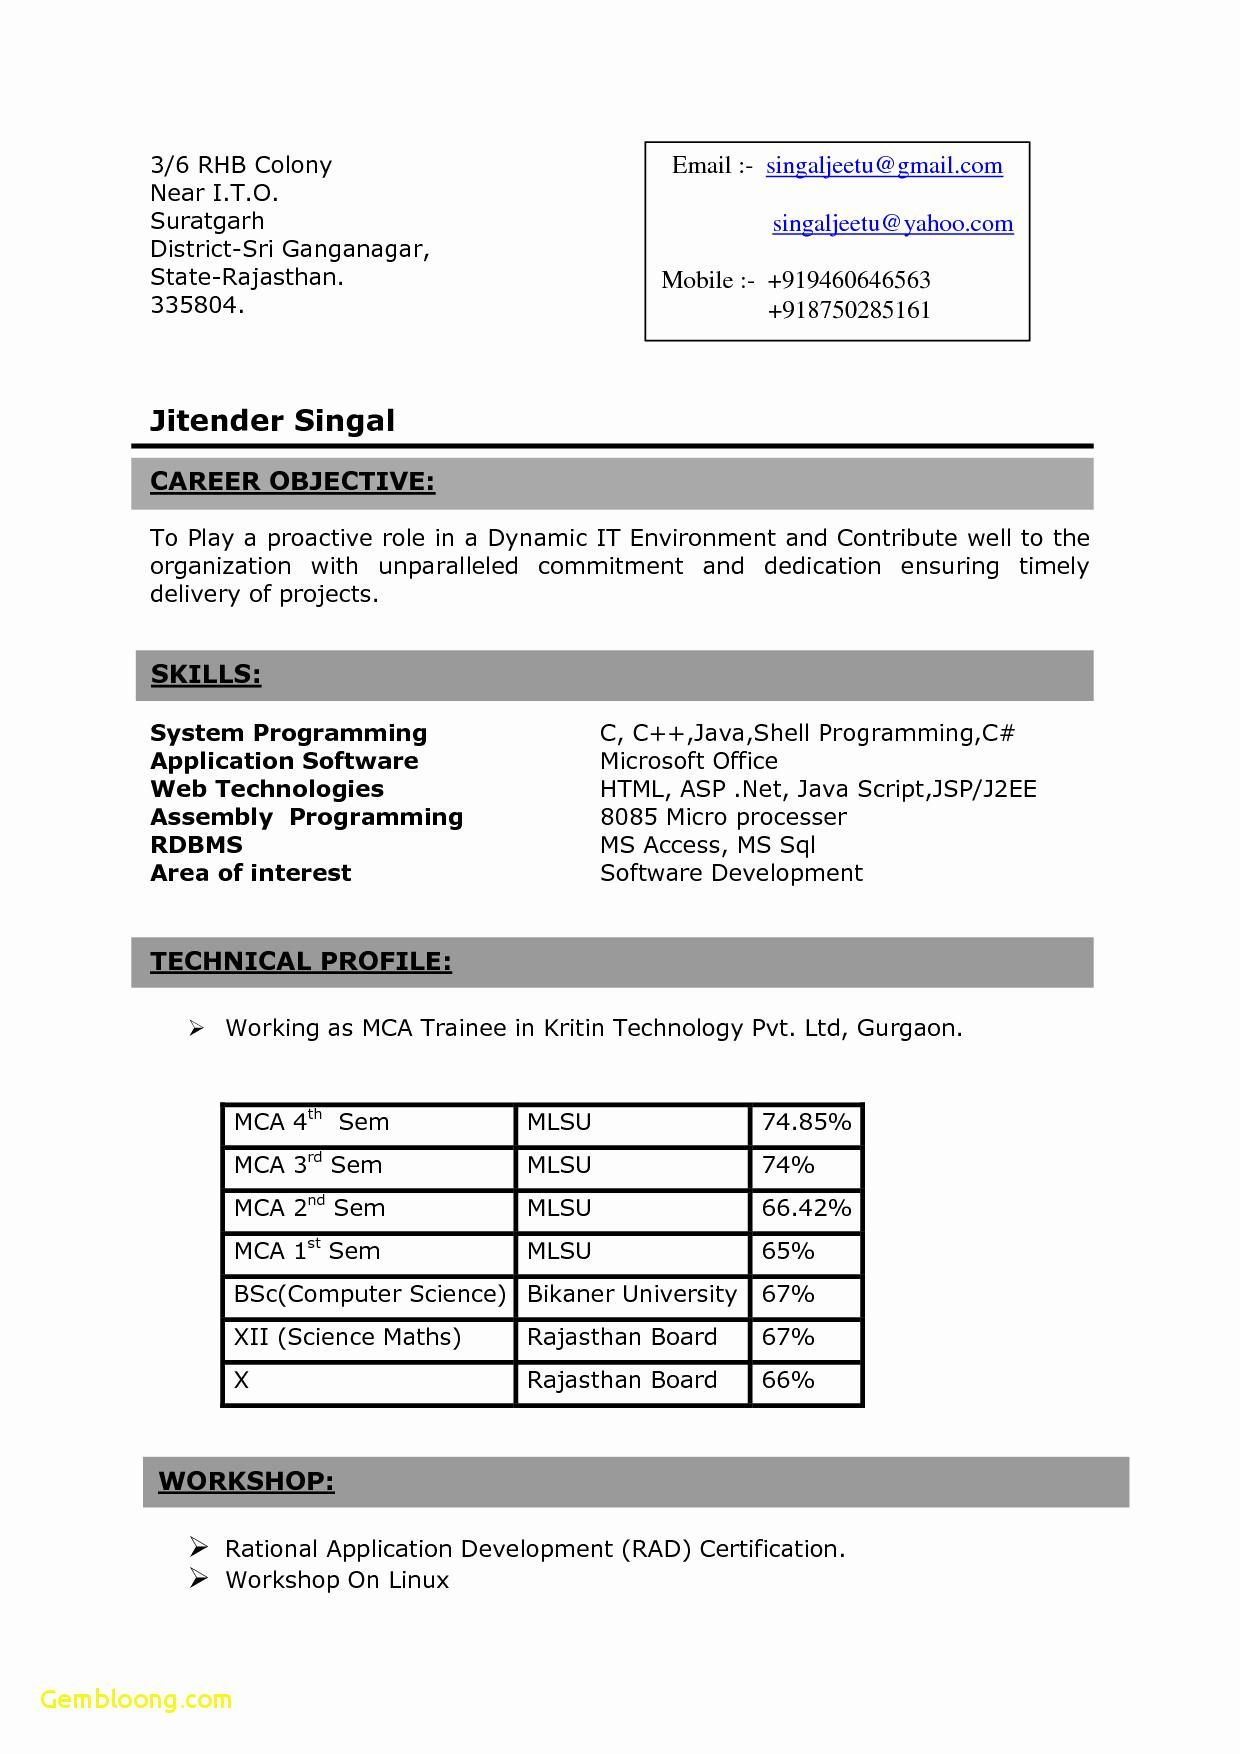 Resume Format For 3rd Year Engineering Students Resume Format For Freshers Resume Format In Word Resume Format Download